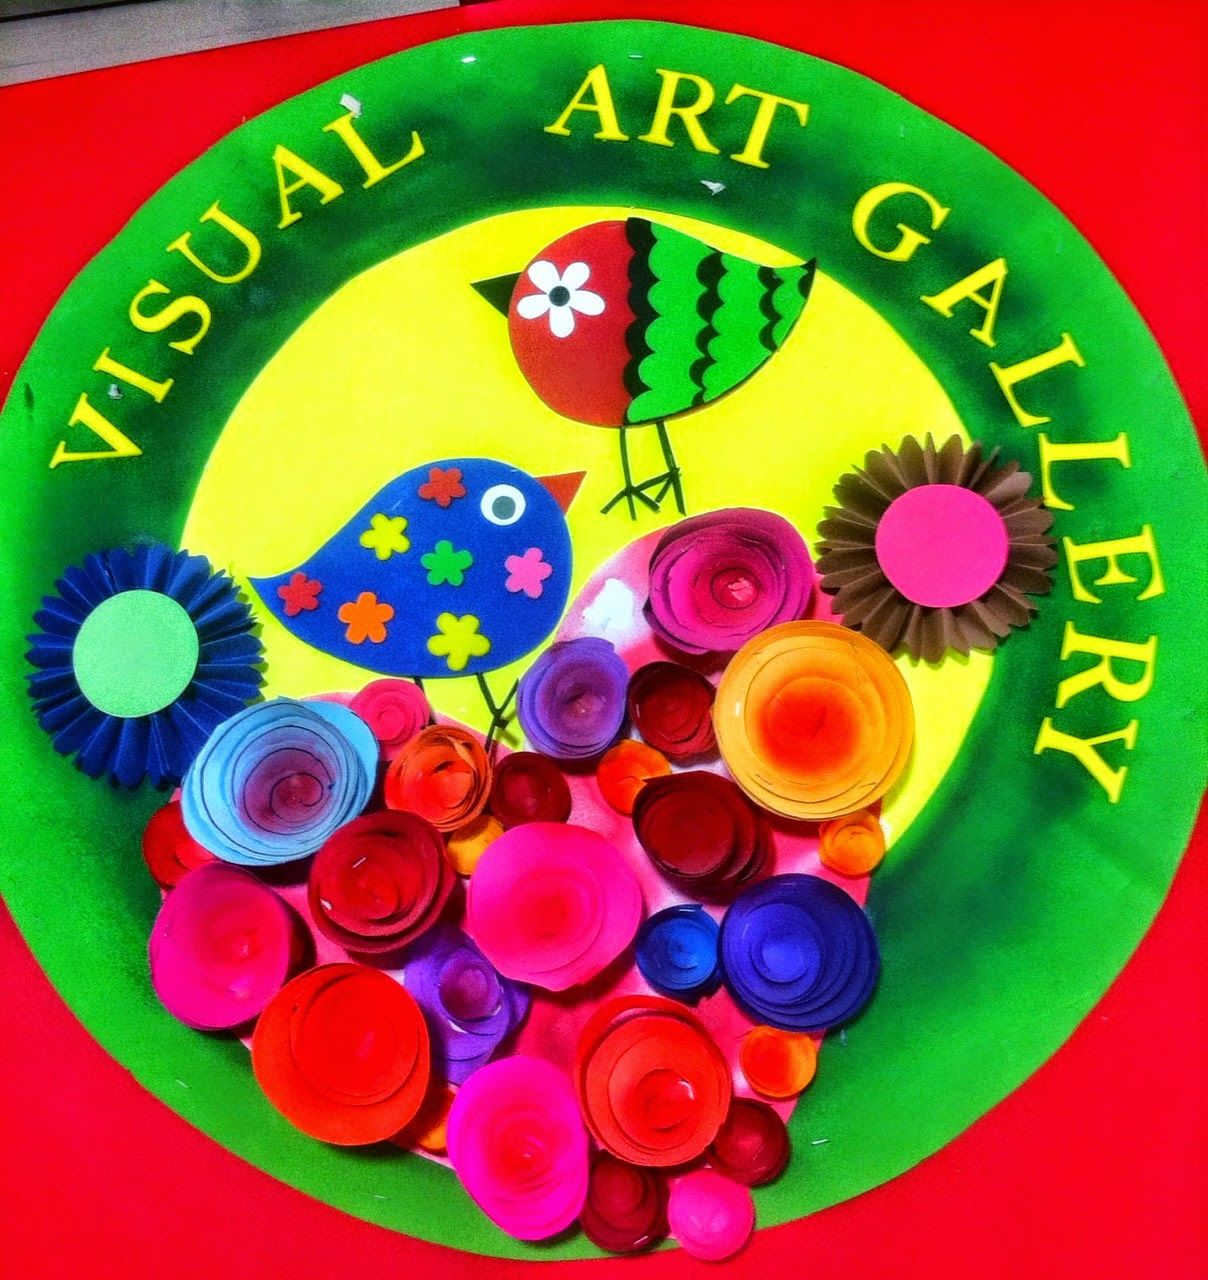 Art craft ideas and bulletin boards for elementary schools vegetable - Art Craft Ideas And Bulletin Boards For Elementary Schools Handmade Paper Flowers